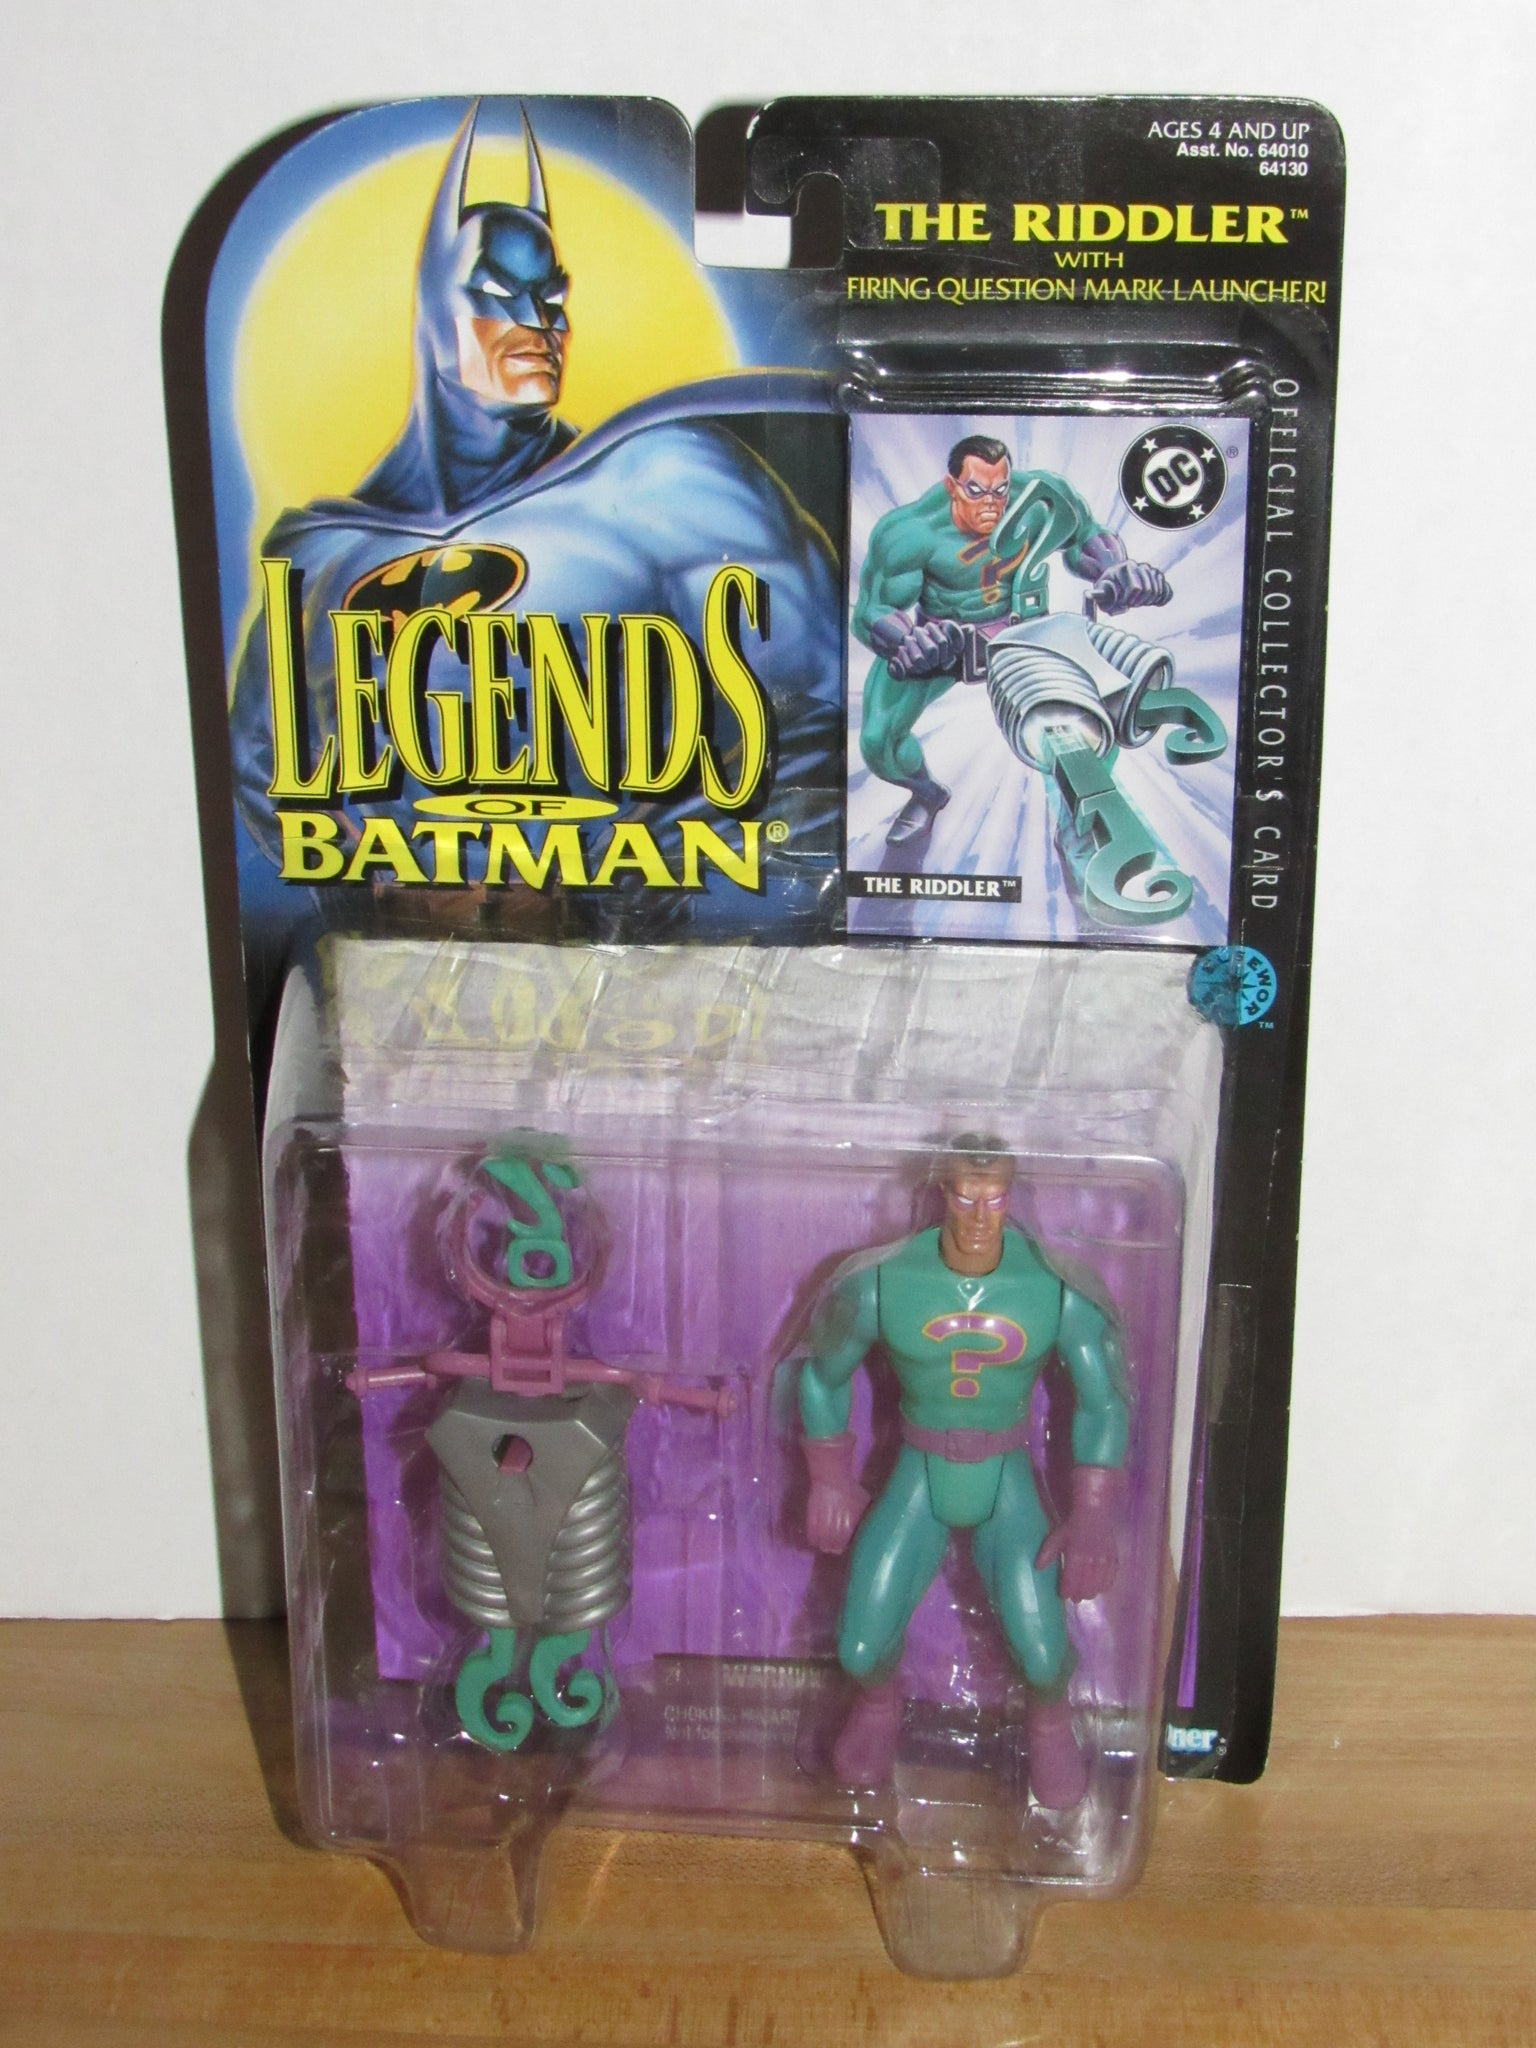 Kenner Legends of Batman The Riddler with Firing Question Mark